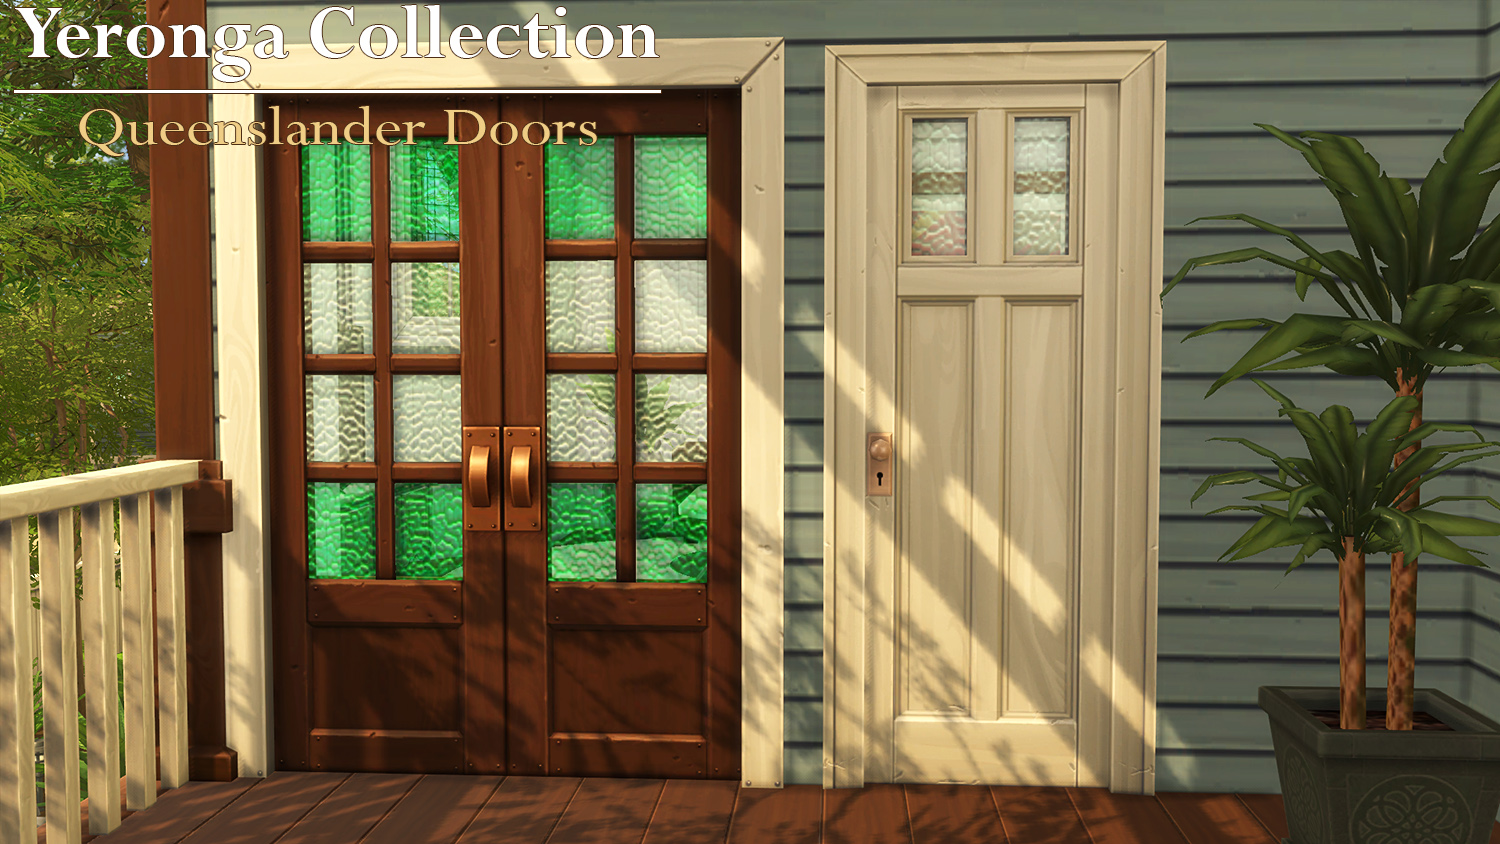 Mod The Sims Queenslander Doors Yeronga Collection